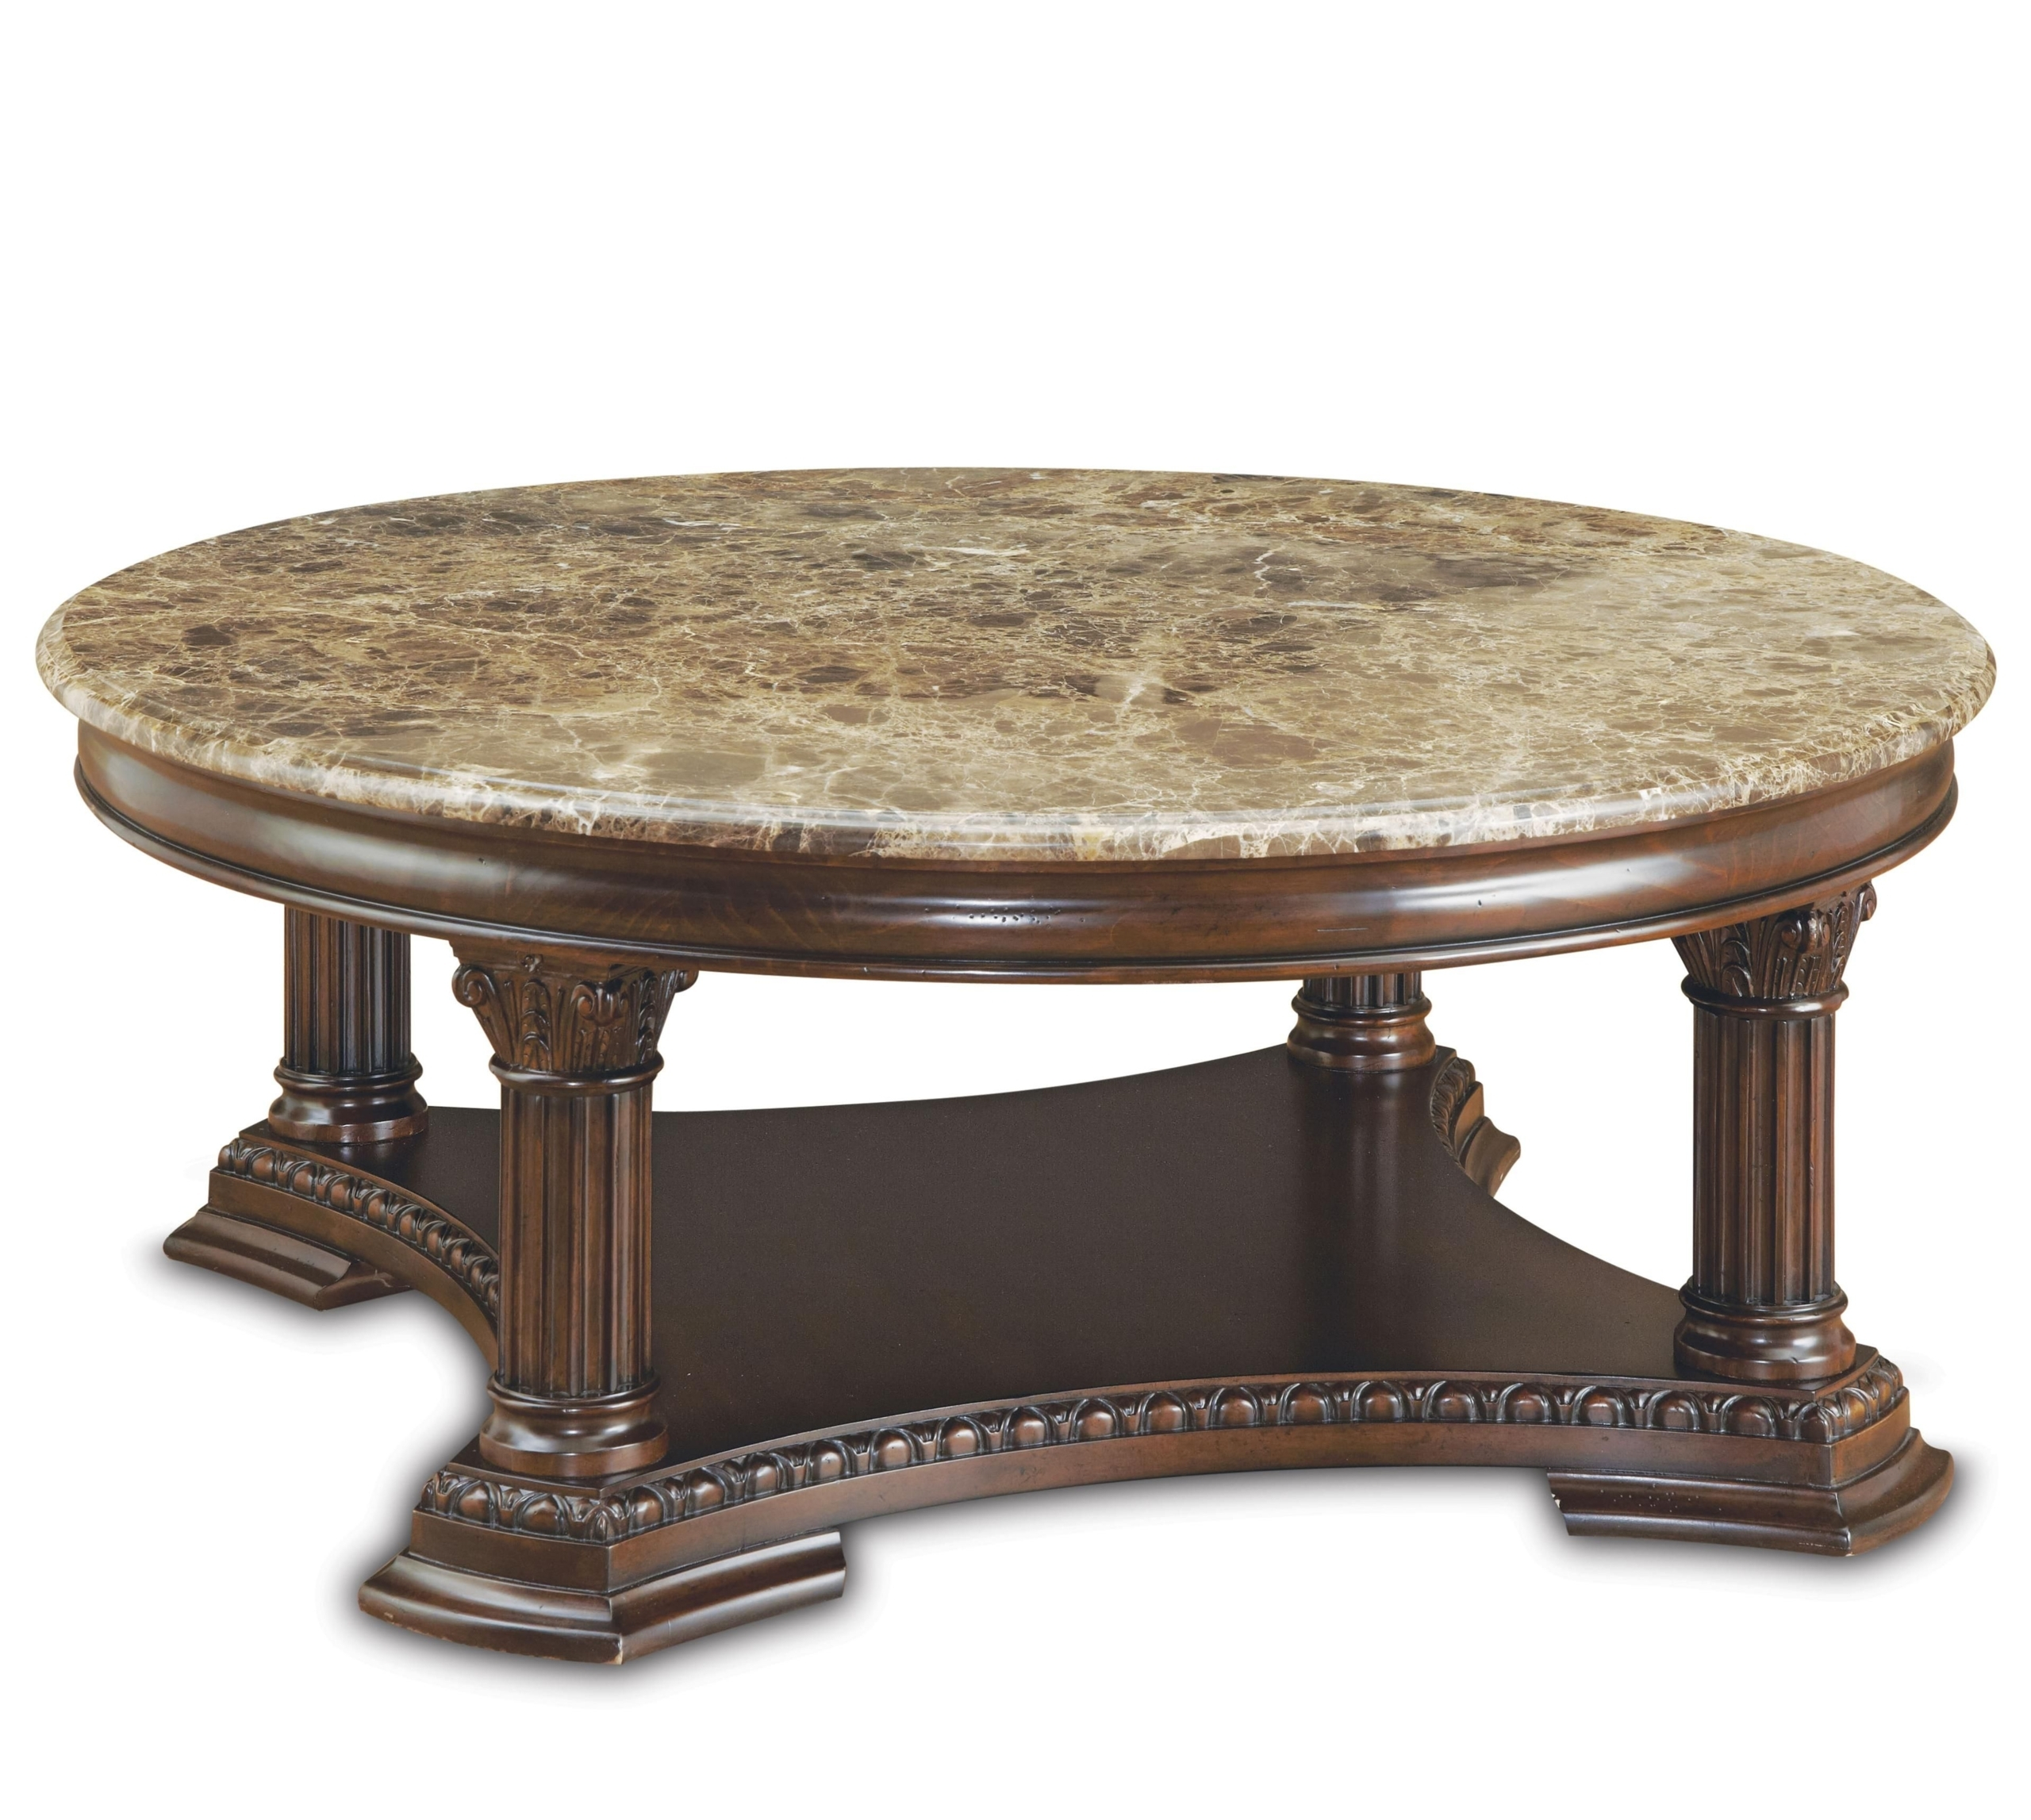 Picture of: Round Stone Top Coffee Table Ideas On Foter